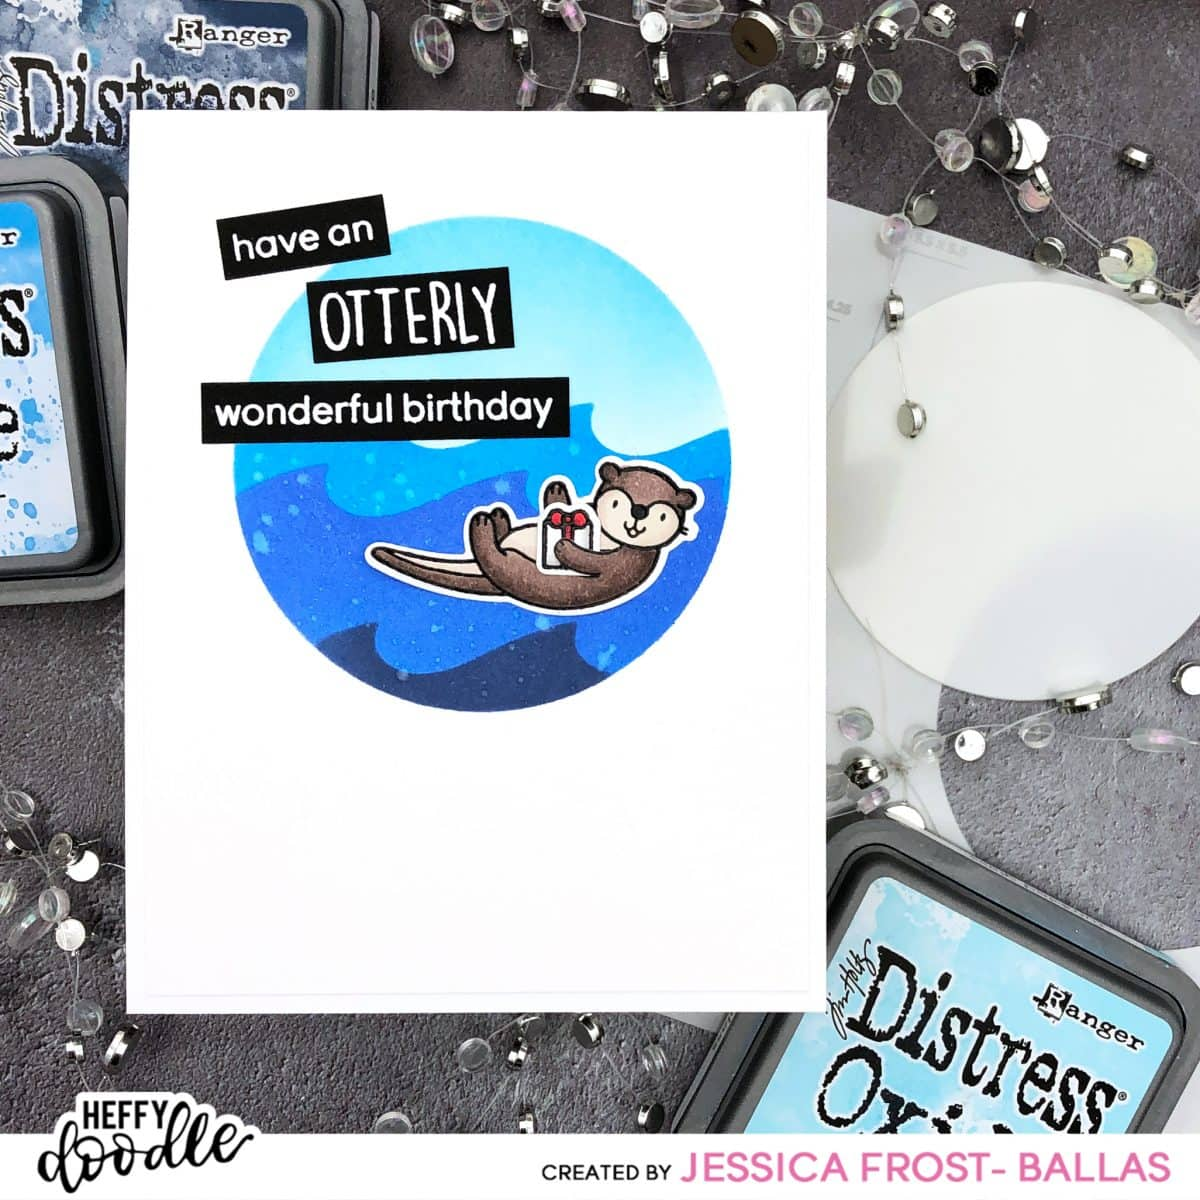 Otterly Wonderful Birthday by Jessica Frost-Ballas for Heffy Doodle